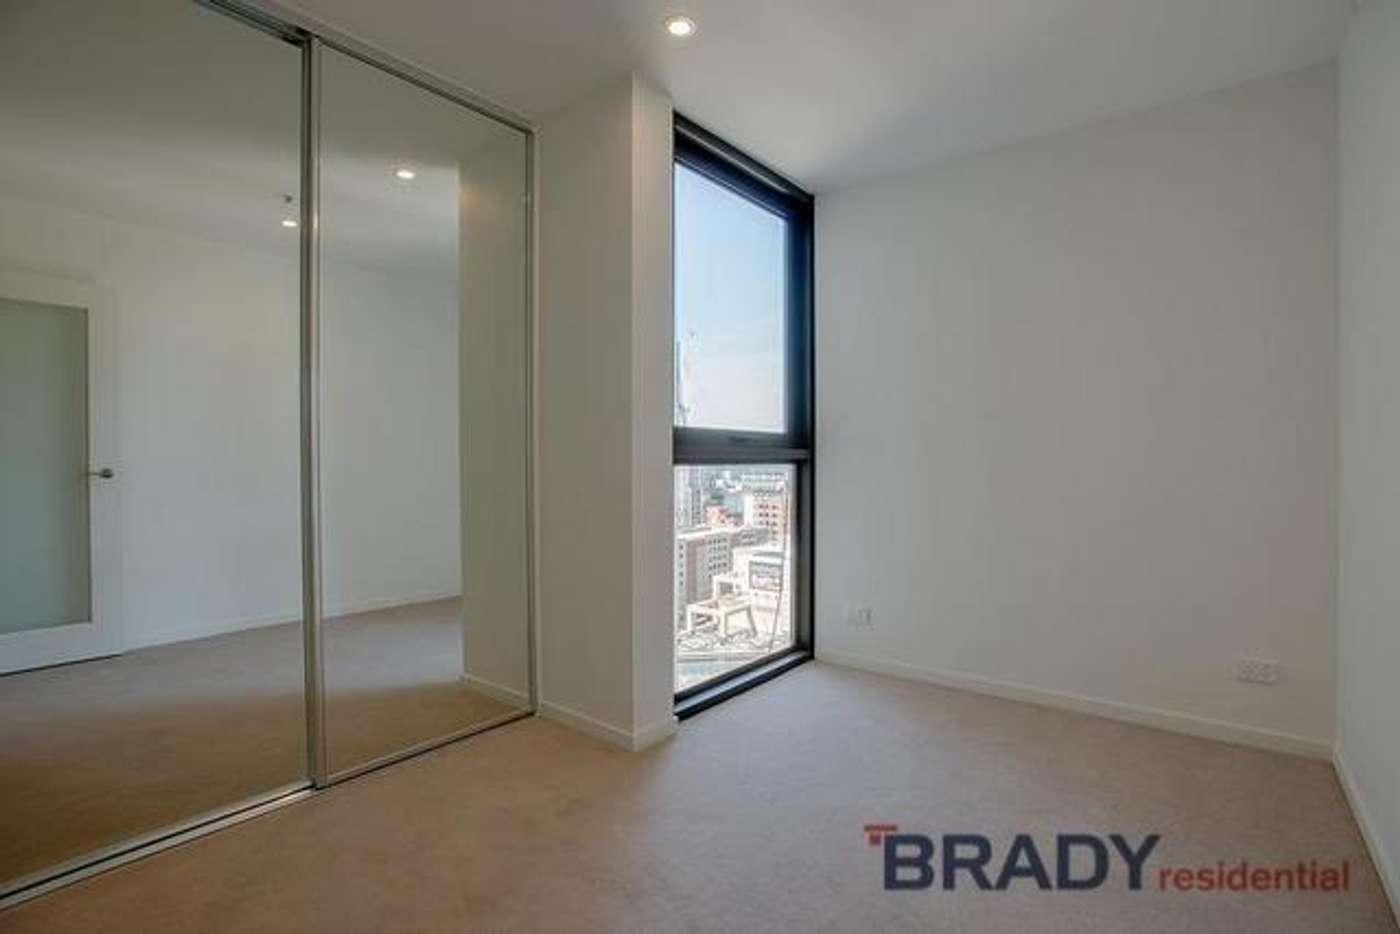 Sixth view of Homely apartment listing, 2901/8 Sutherland Street, Melbourne VIC 3000